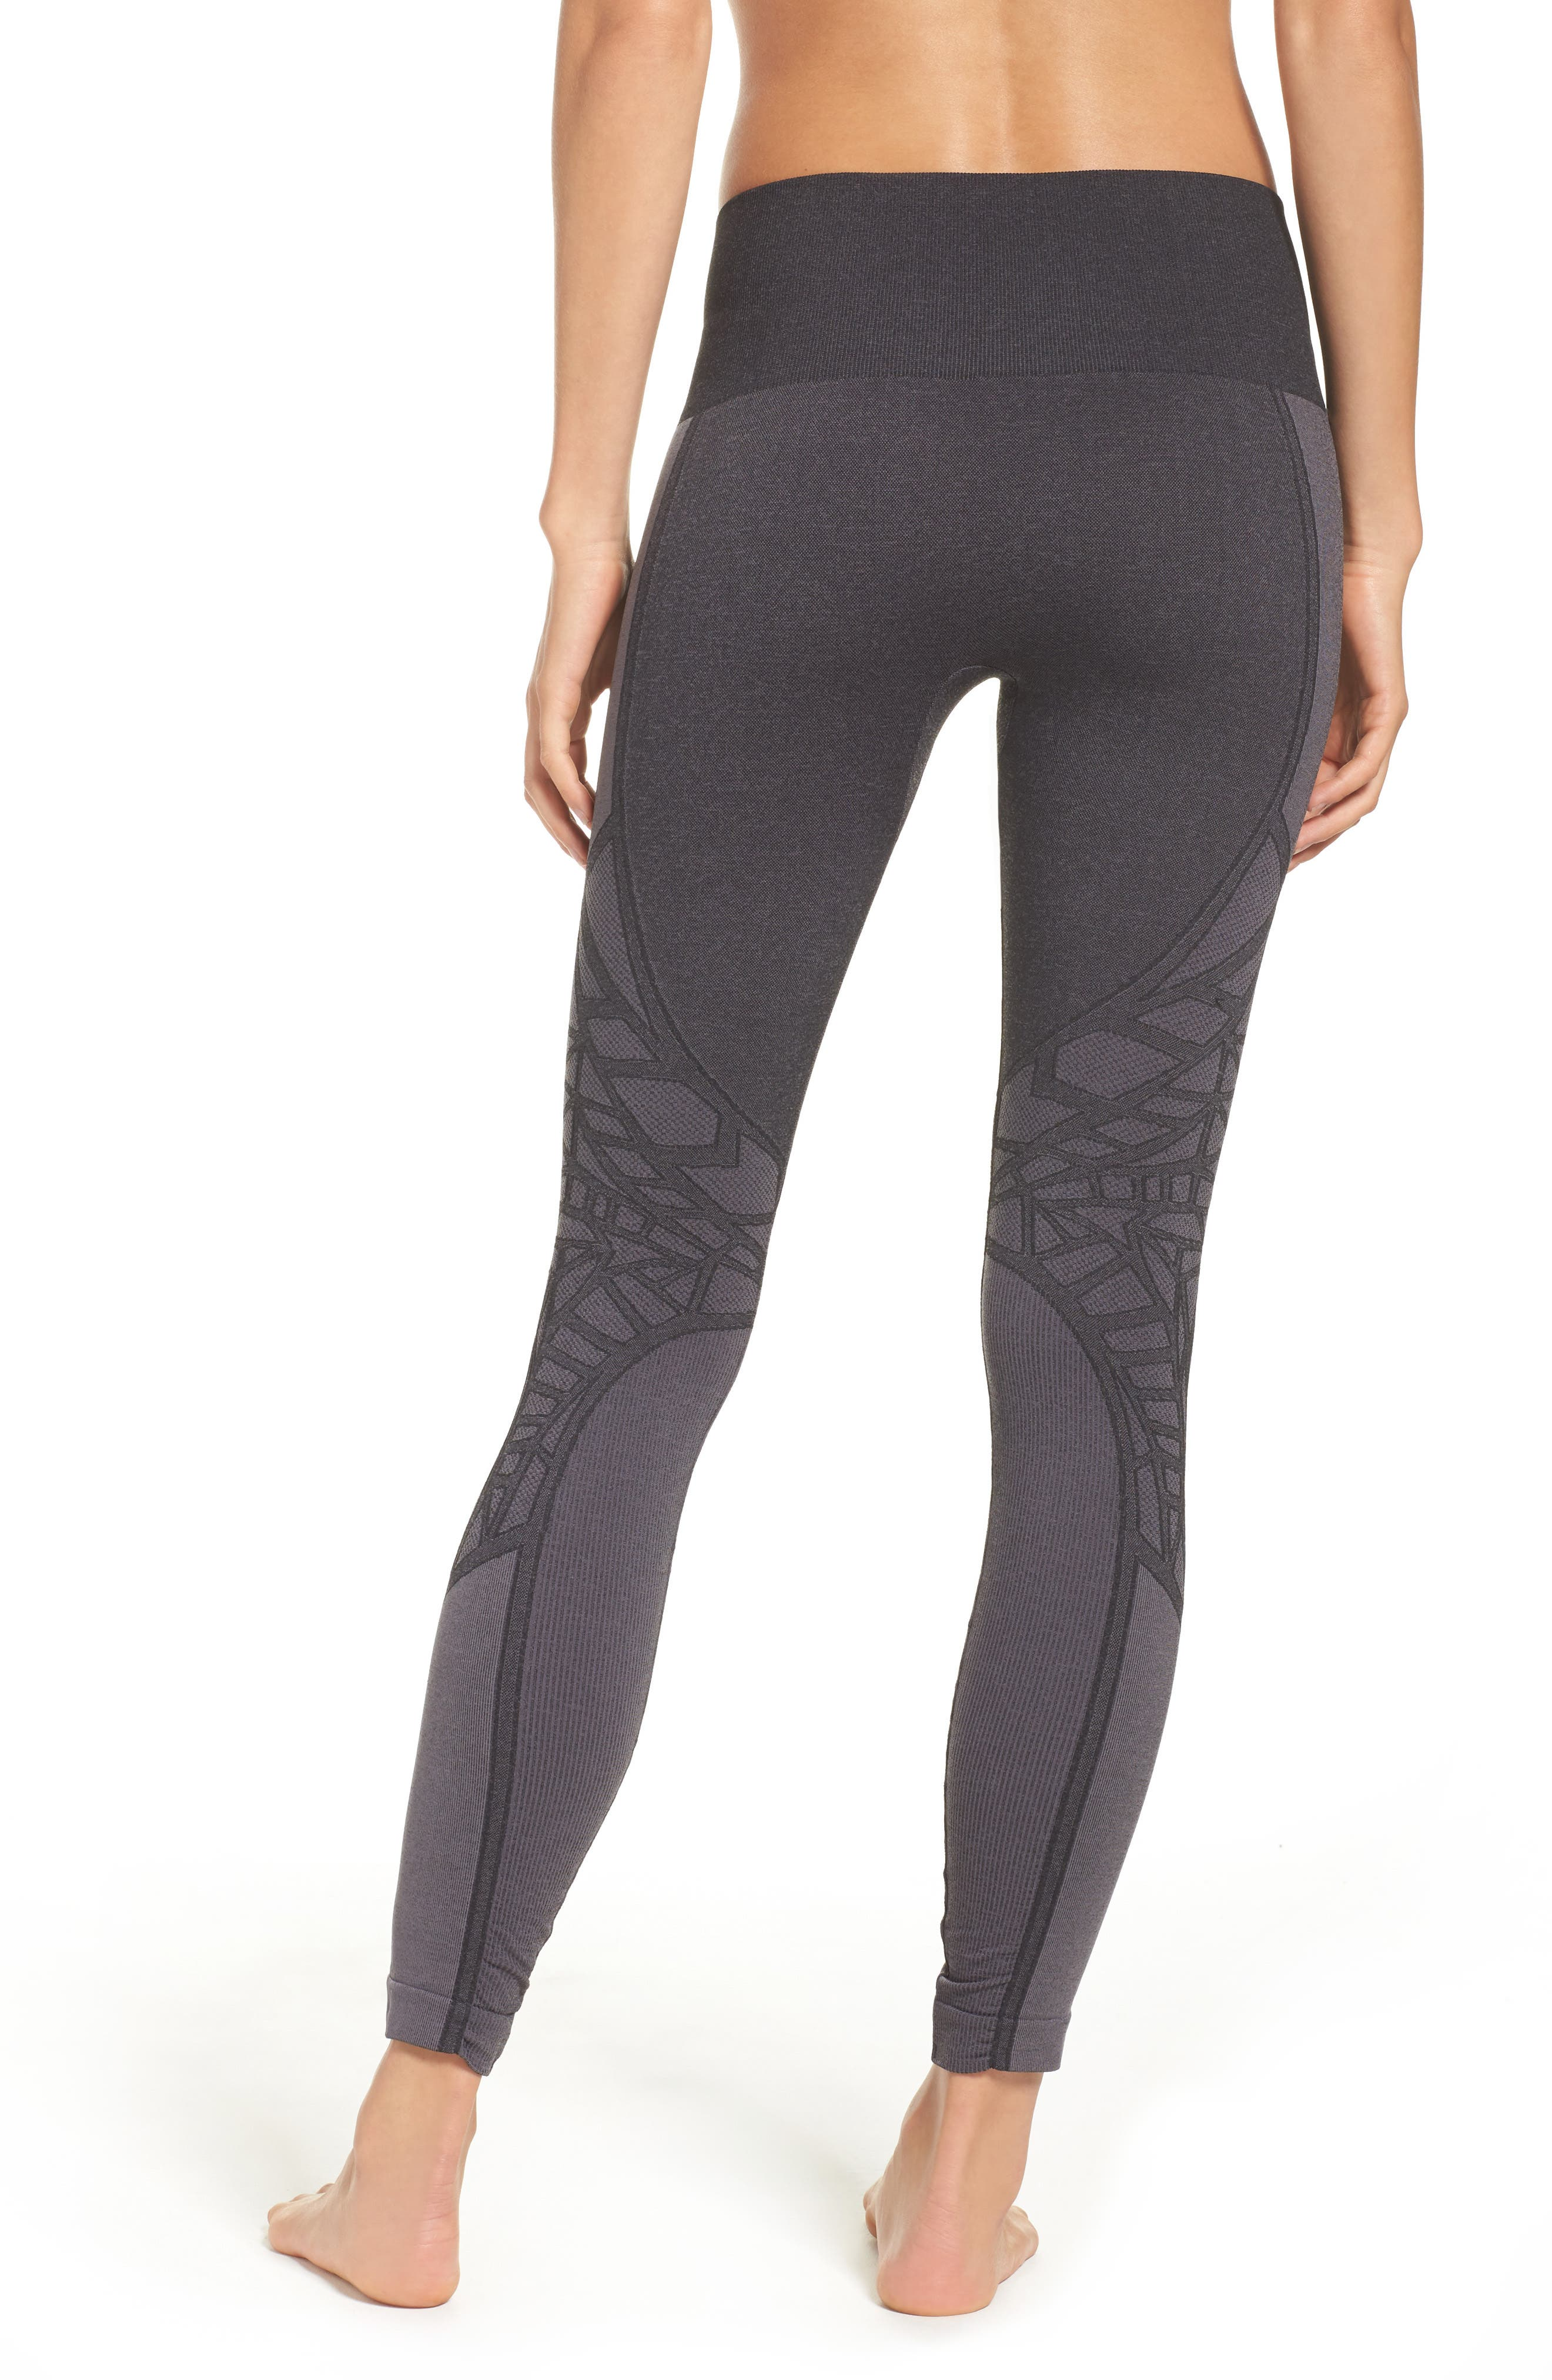 Revolution Leggings,                             Alternate thumbnail 2, color,                             Excalibur And Black